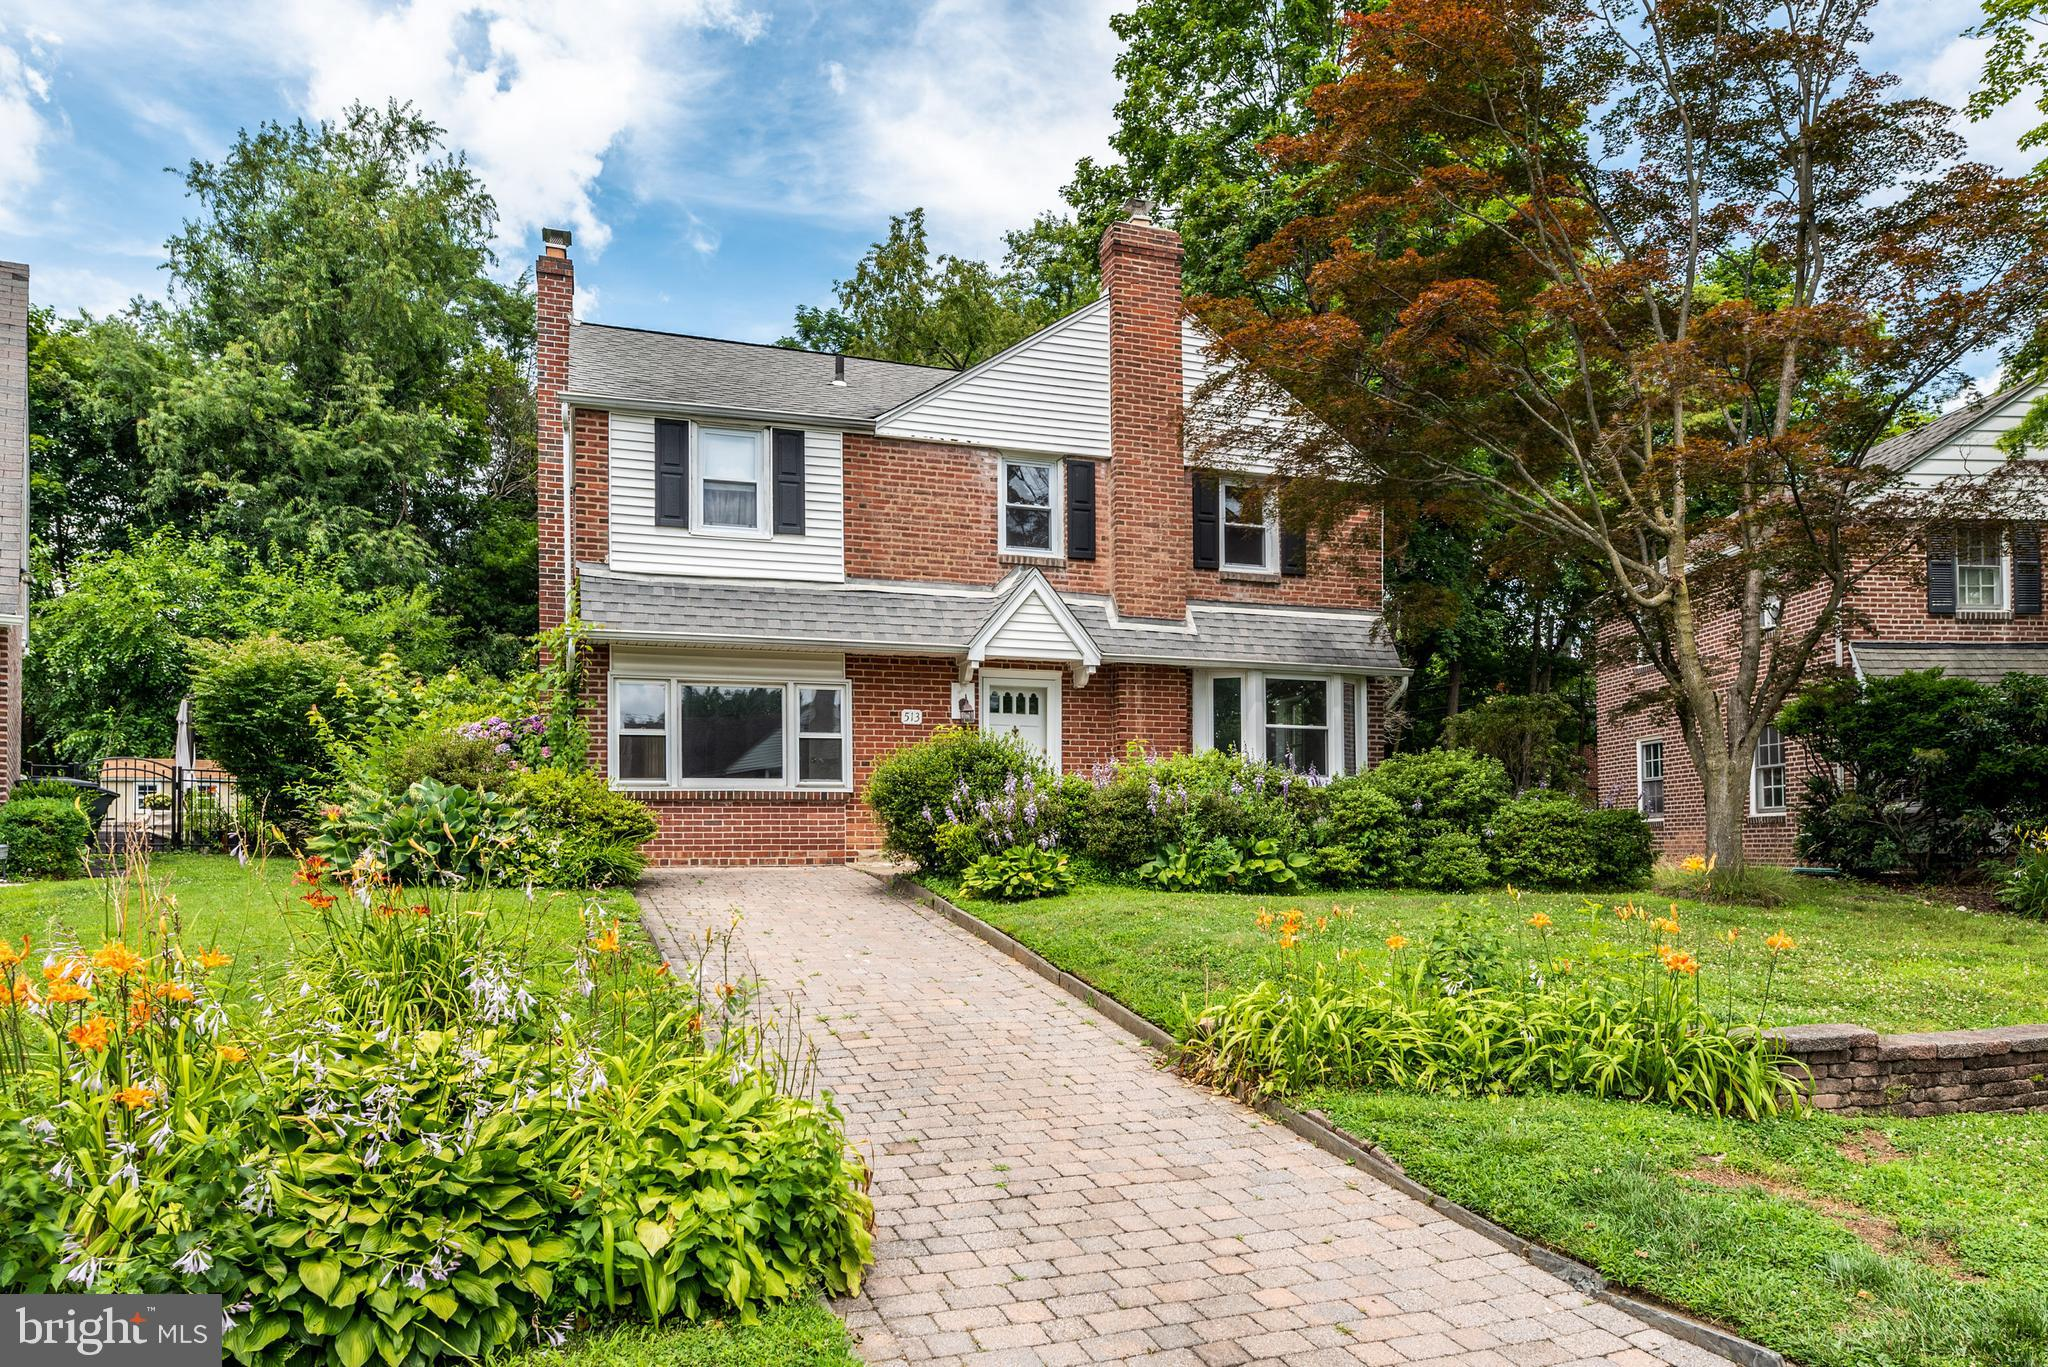 This classic brick colonial is ideally located in the heart of Wynnewood. Within walking distance to schools, parks, and shopping, Rock Glen Drive is a pretty street with nice front yards and a community appeal. This well-loved home is ready for the next owners to create their own wonderful memories. From its access to the top schools of Lower Merion, to its walkable streets and easy commute to Center City via the Regional Rail, there is so much to love! From the pretty entrance, enter into the living room, with wood floors, deep-silled windows and attractive, classic feel. A charming, arched entrance leads into the dining room, also with hardwood, chair rails, and wide windows. Directly off the dining room is the enclosed, generous sunroom, with views of the wonderful backyard, perfect for morning coffee, birdwatching, or cool, early fall suppers. The dining room leads into the kitchen, with cheerful white cabinetry, nice backsplash and tile flooring. The first level also features a den with fireplace; a powder room is located off this room. The second level has three attractive bedrooms, each with hardwood floors. The main bedroom, with an ample closet, well-placed windows, and a ceiling fan, also has a full bath with stall shower and nice floor. The two additional bedrooms share the hall bath, with a tub/shower combination with ceramic tile and a classic black-and-white tiled floor. The lower level/basement is clean and neat, with plenty of room for storage. The backyard is a real gem: lush, level, and absolutely perfect for entertaining throughout the seasons! Rock Glen Drive is an attractive, welcoming block in a top-tier township—with so much to recommend it, it is well worth the investment. This lovely Wynnewood neighborhood has walkable streets and is great for jogging. It is very close to Suburban Square, with its fantastic farmers market and delicious restaurants, as well as a variety of sought-after shops. Whole Foods is also close, as are Wynnewoods beau